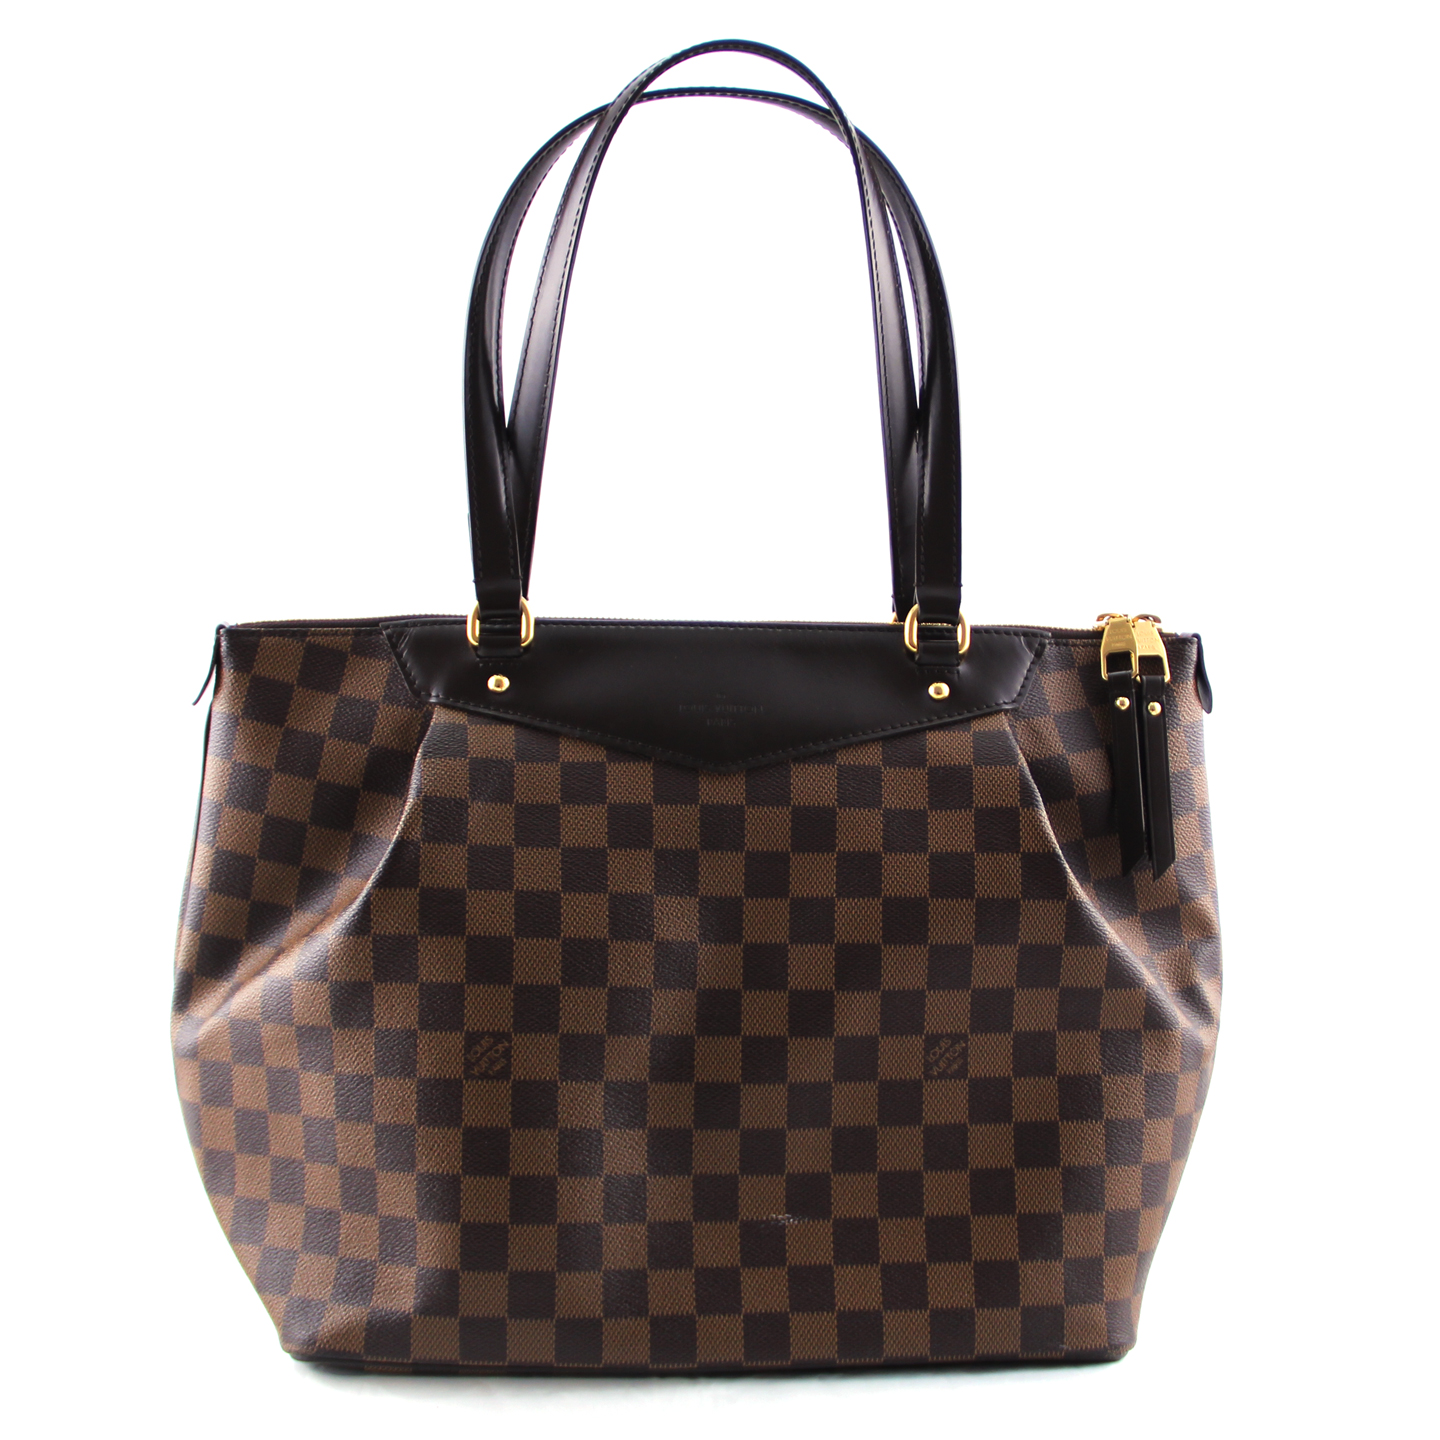 replica handbag manufacturers - Sell Designer Handbags San Diego - Sell It Here Store